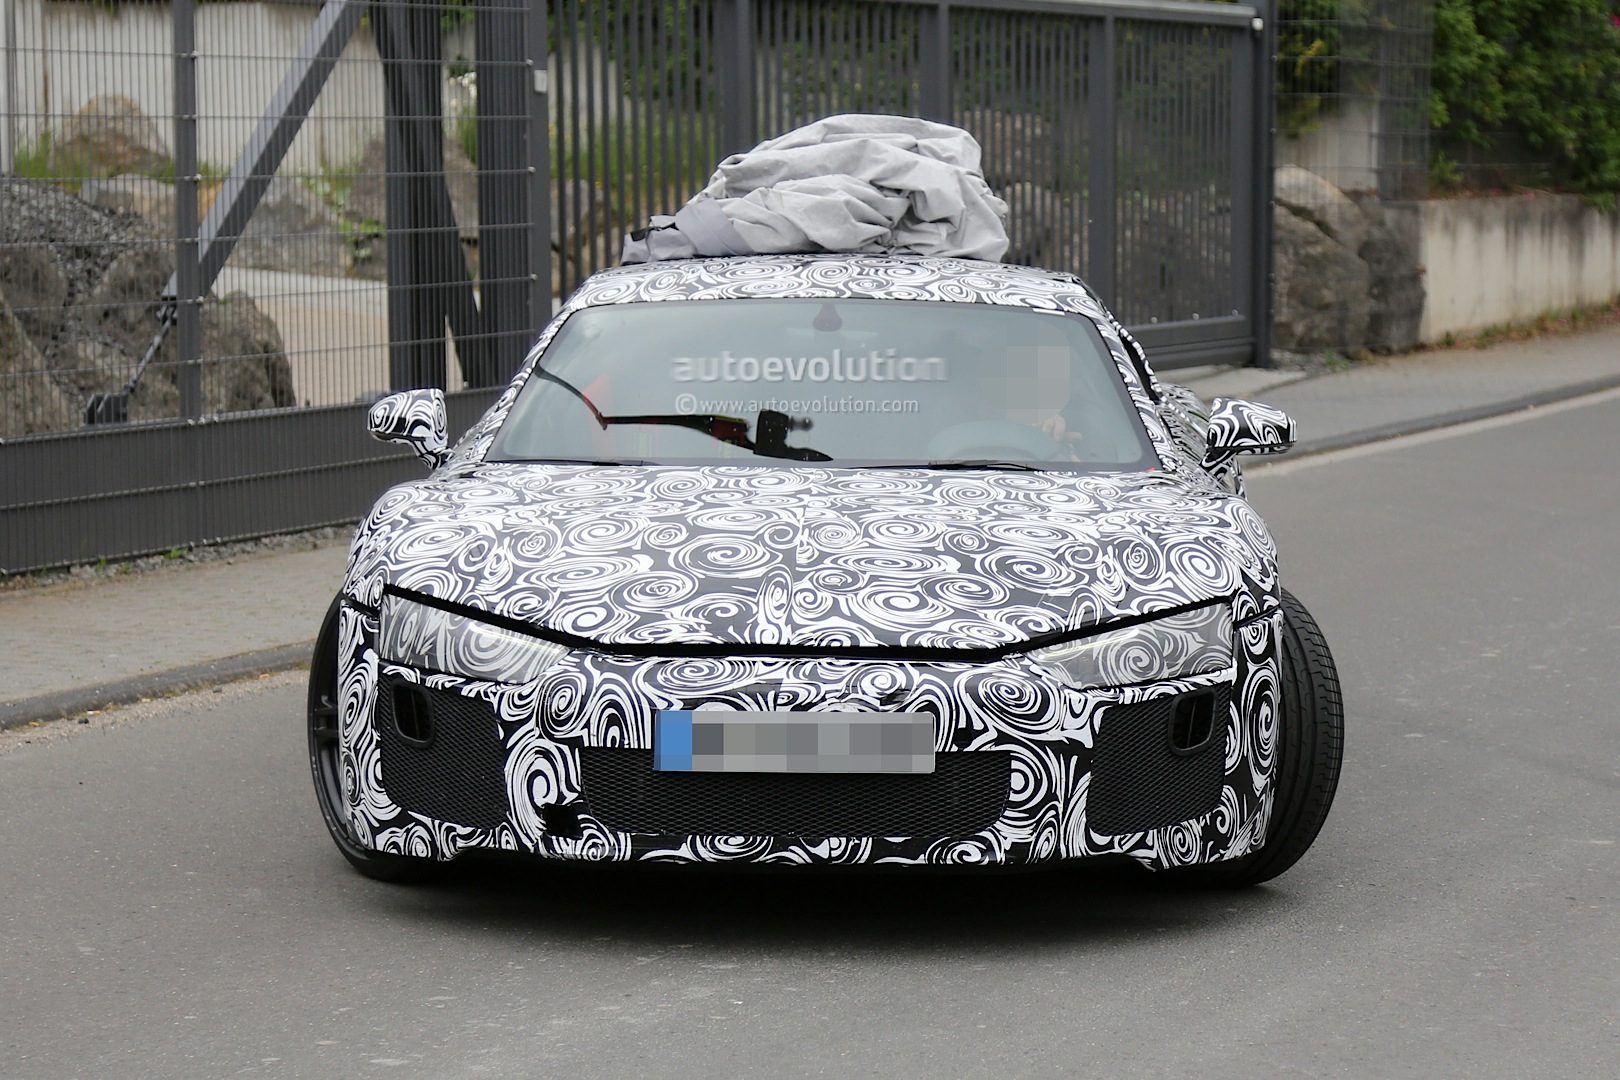 2015 - [Audi] R8 II / R8 II Spider - Page 2 2016-audi-r8-new-led-taillights-spied-in-detail_2